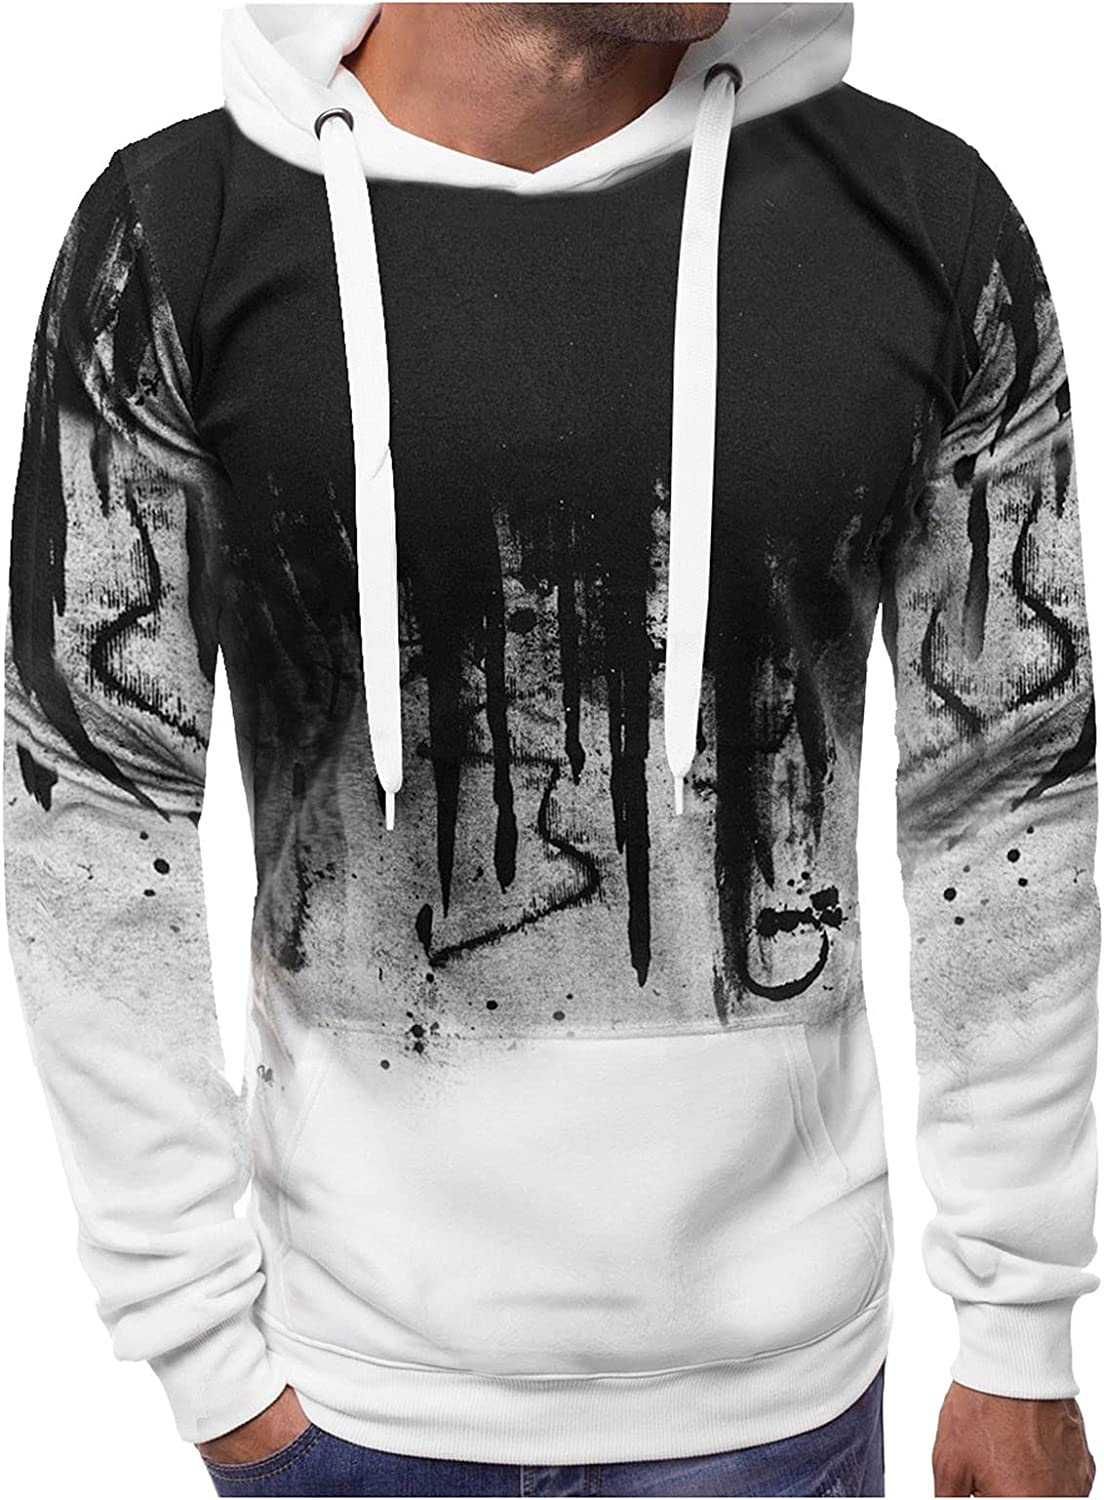 XXBR Hoodies for Mens, Fall Ink-splash Printed Patchwork Drawstring Hooded Sweatshirts Slim Fit Athletic Casual Pullover